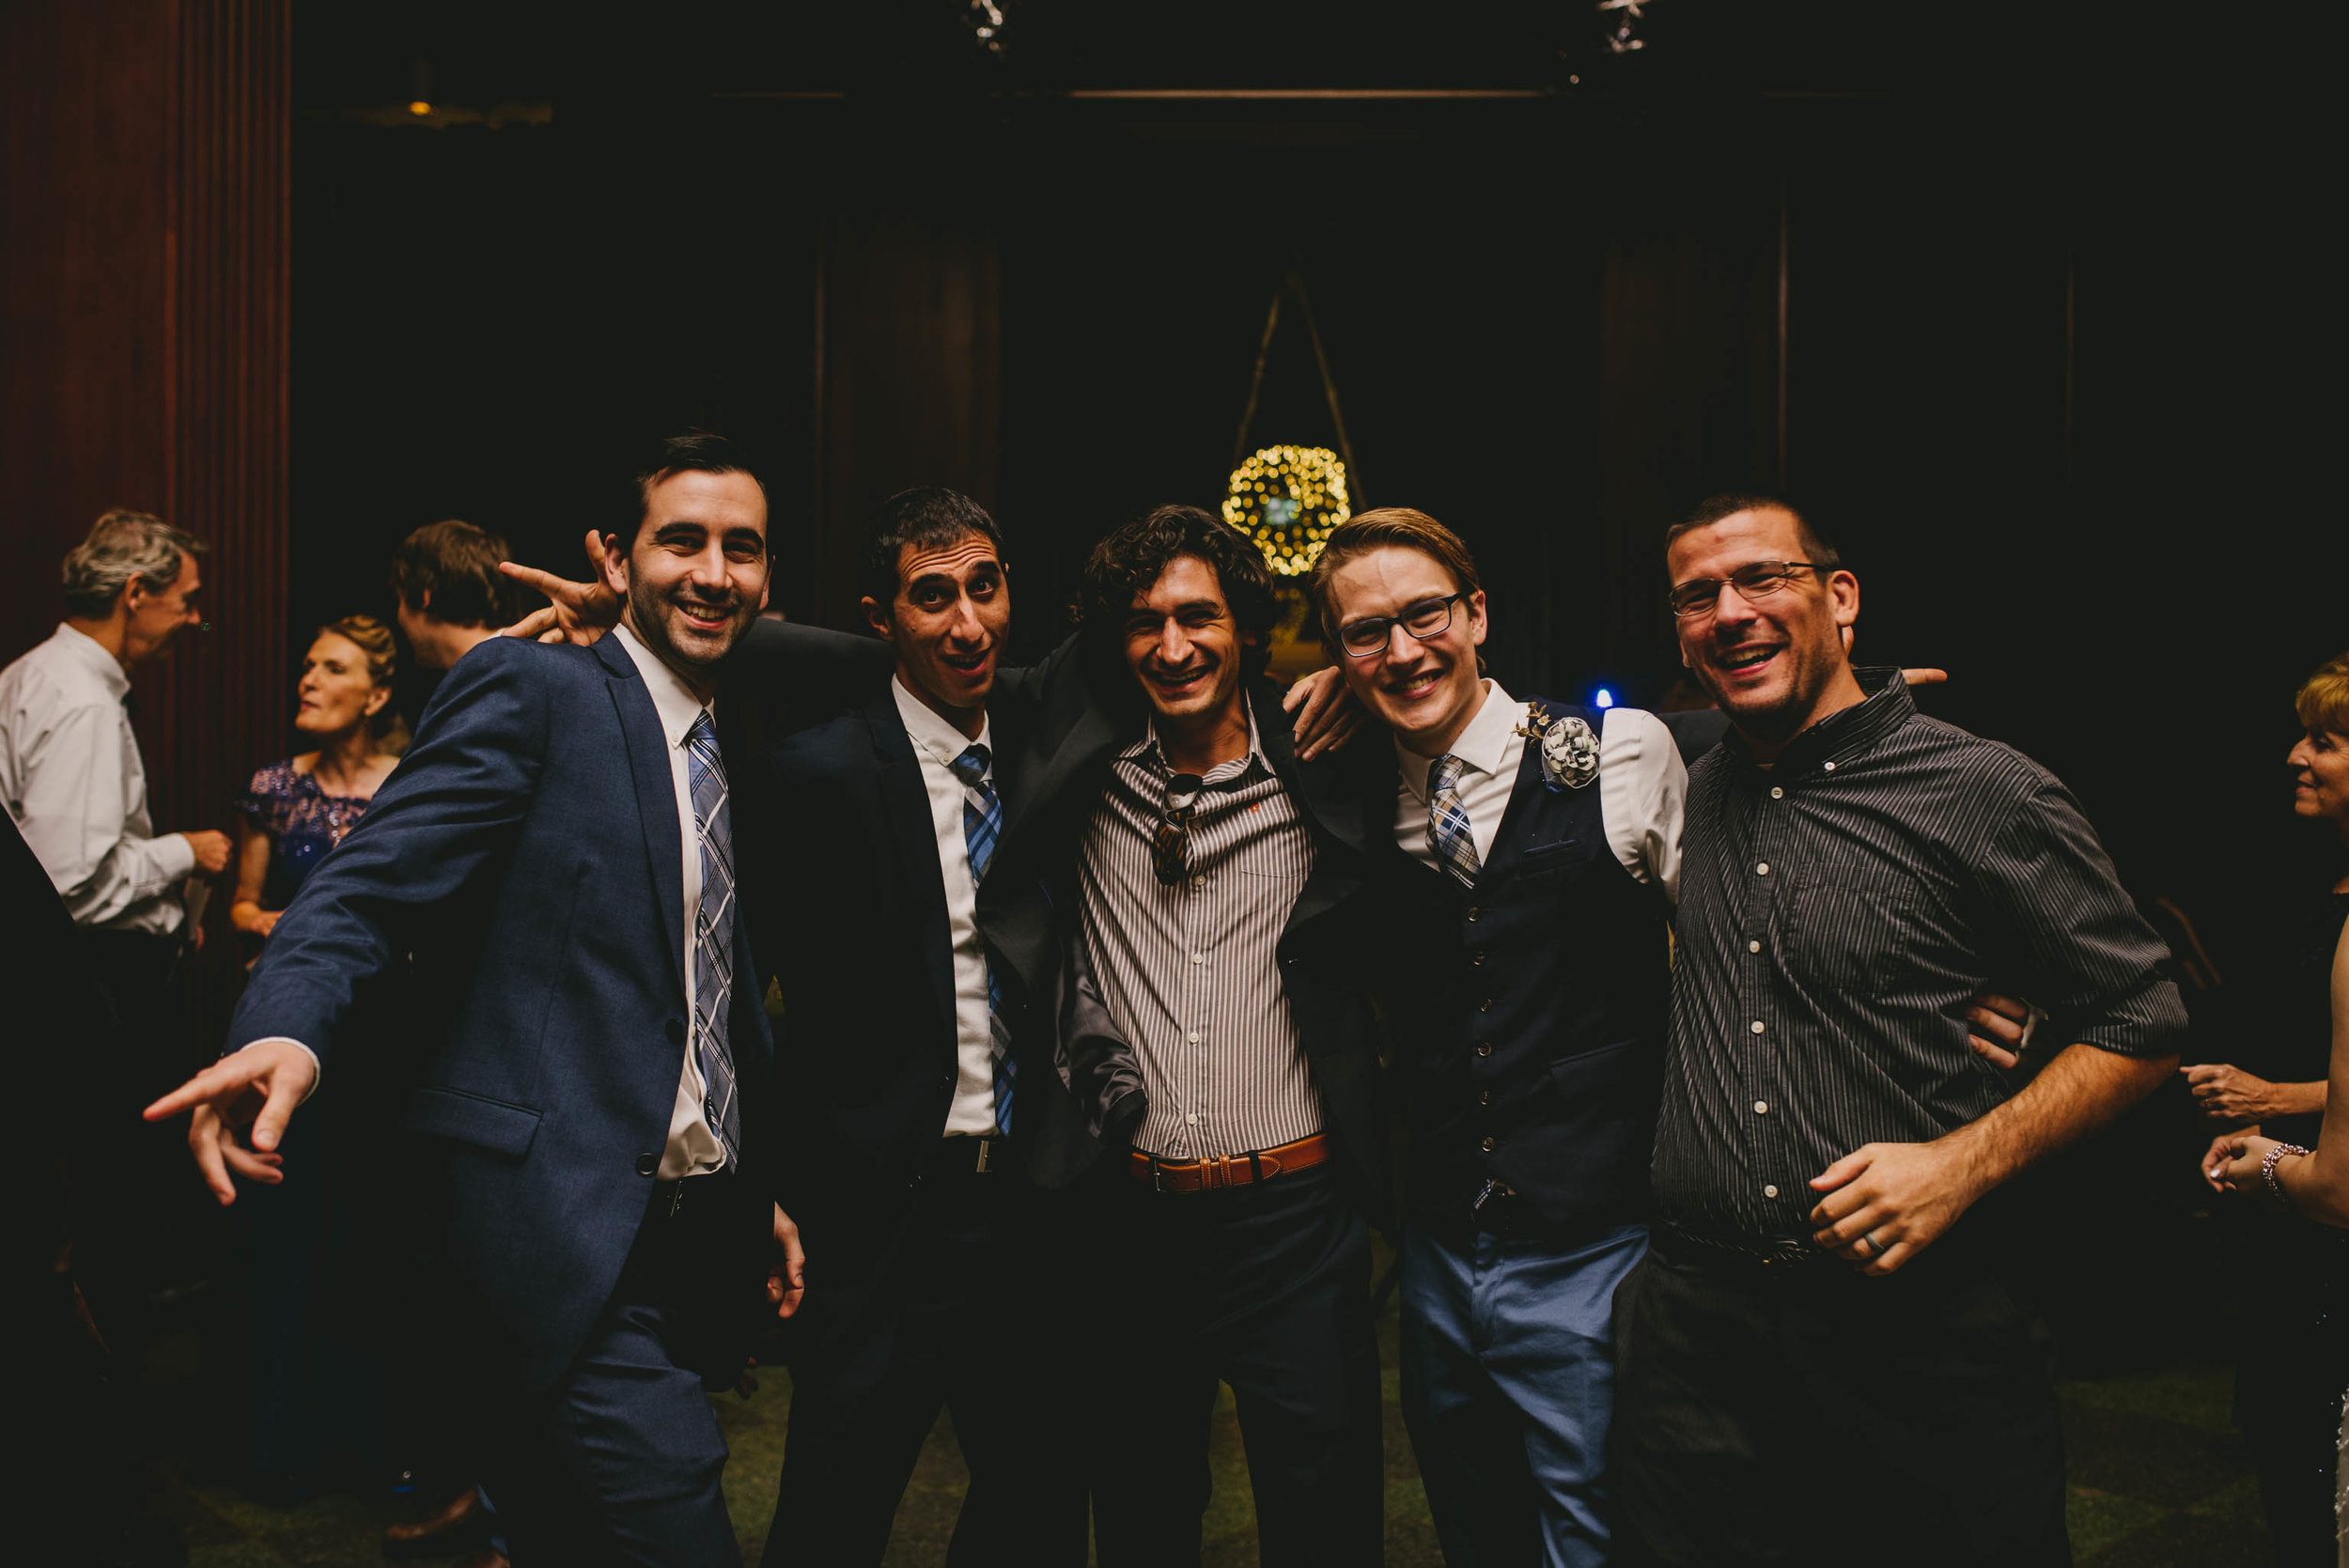 21c-hotel-durham-offbeat-wedding-group-photo.jpg